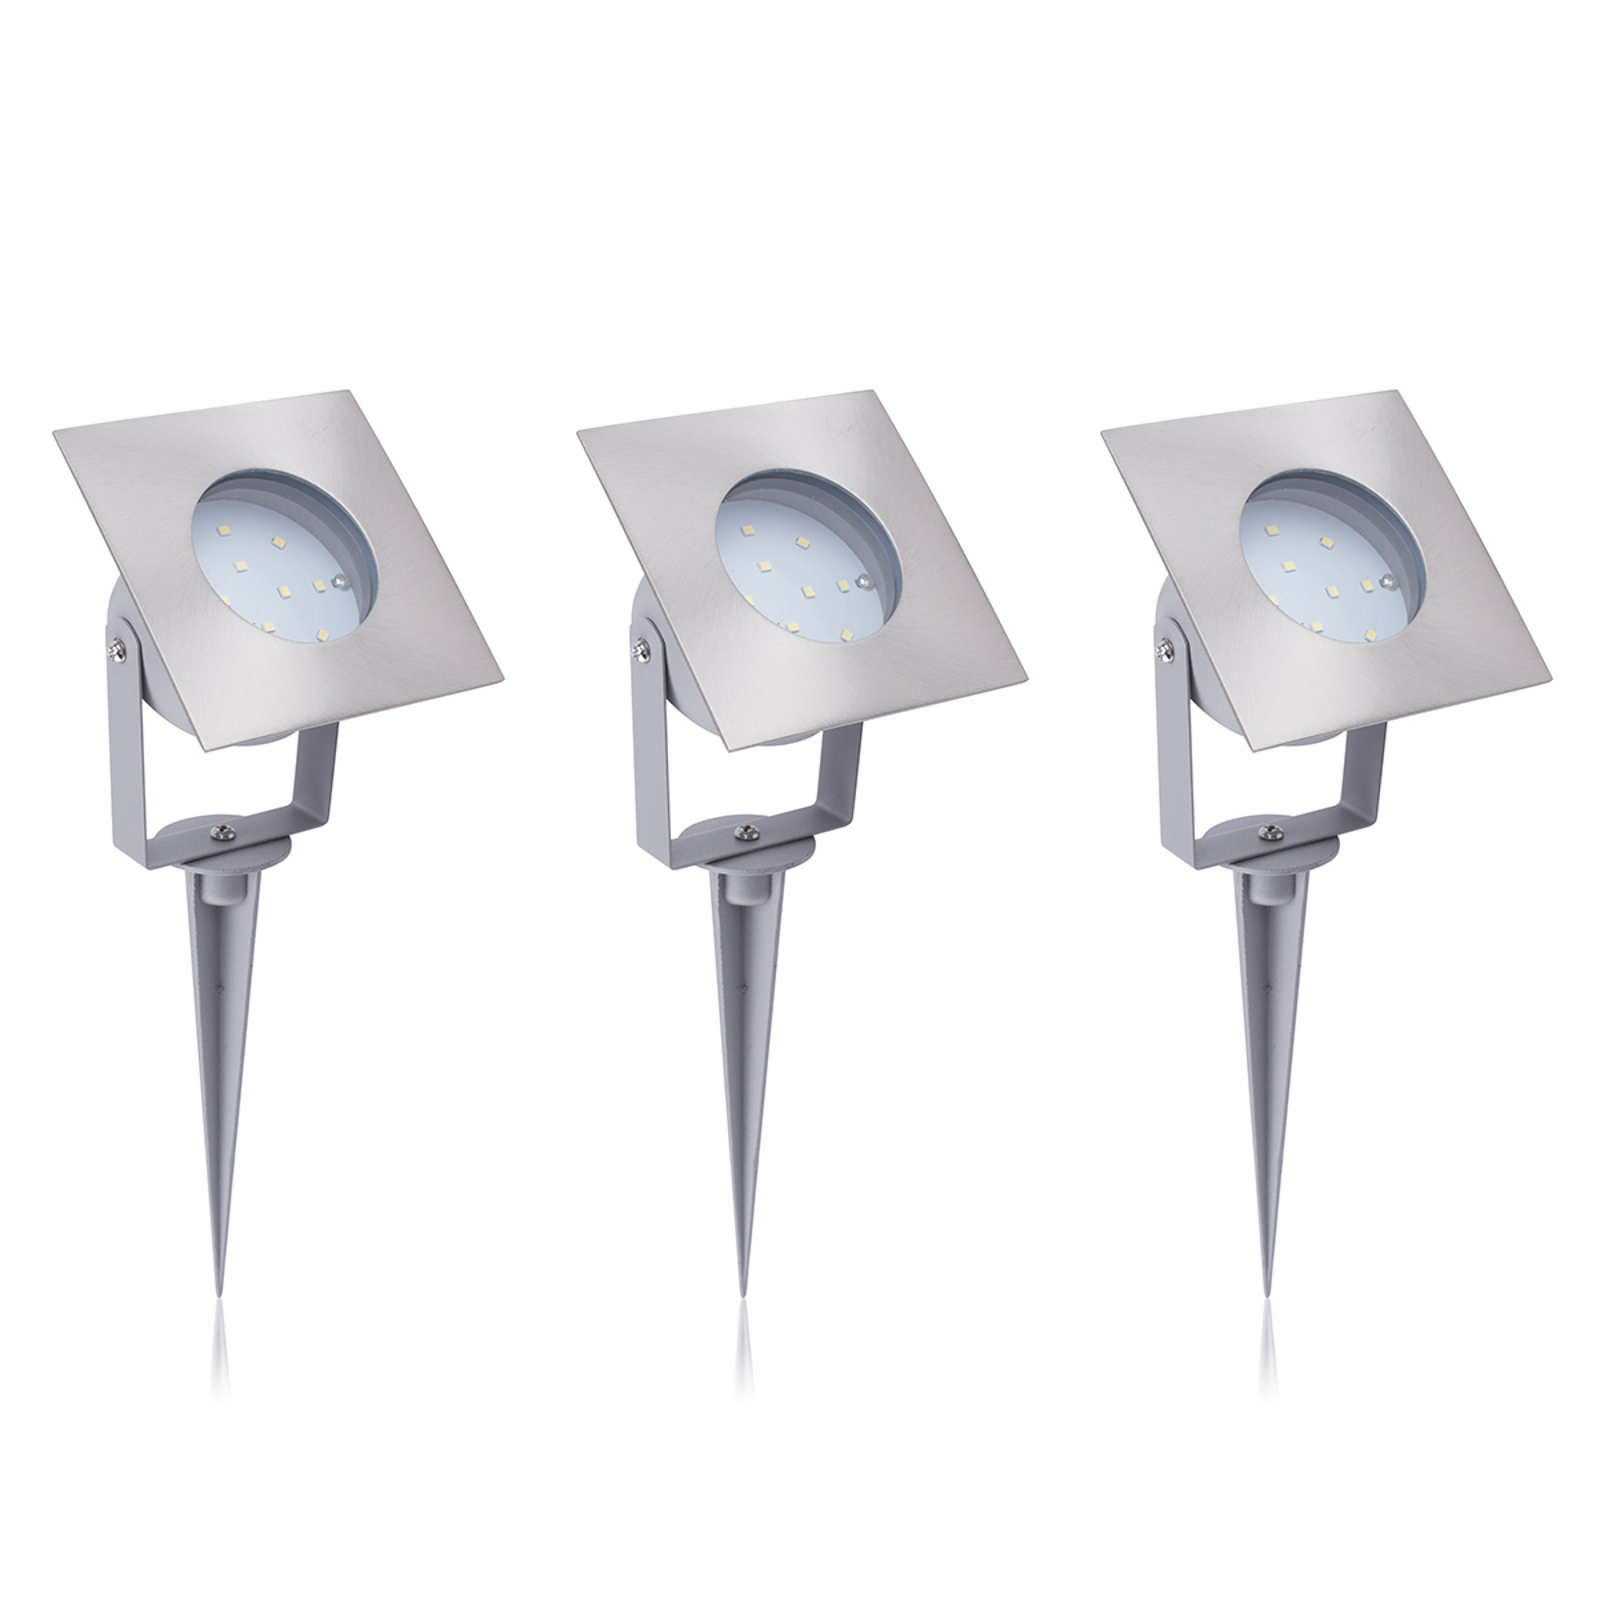 LED buitenspot Todi in 3per set